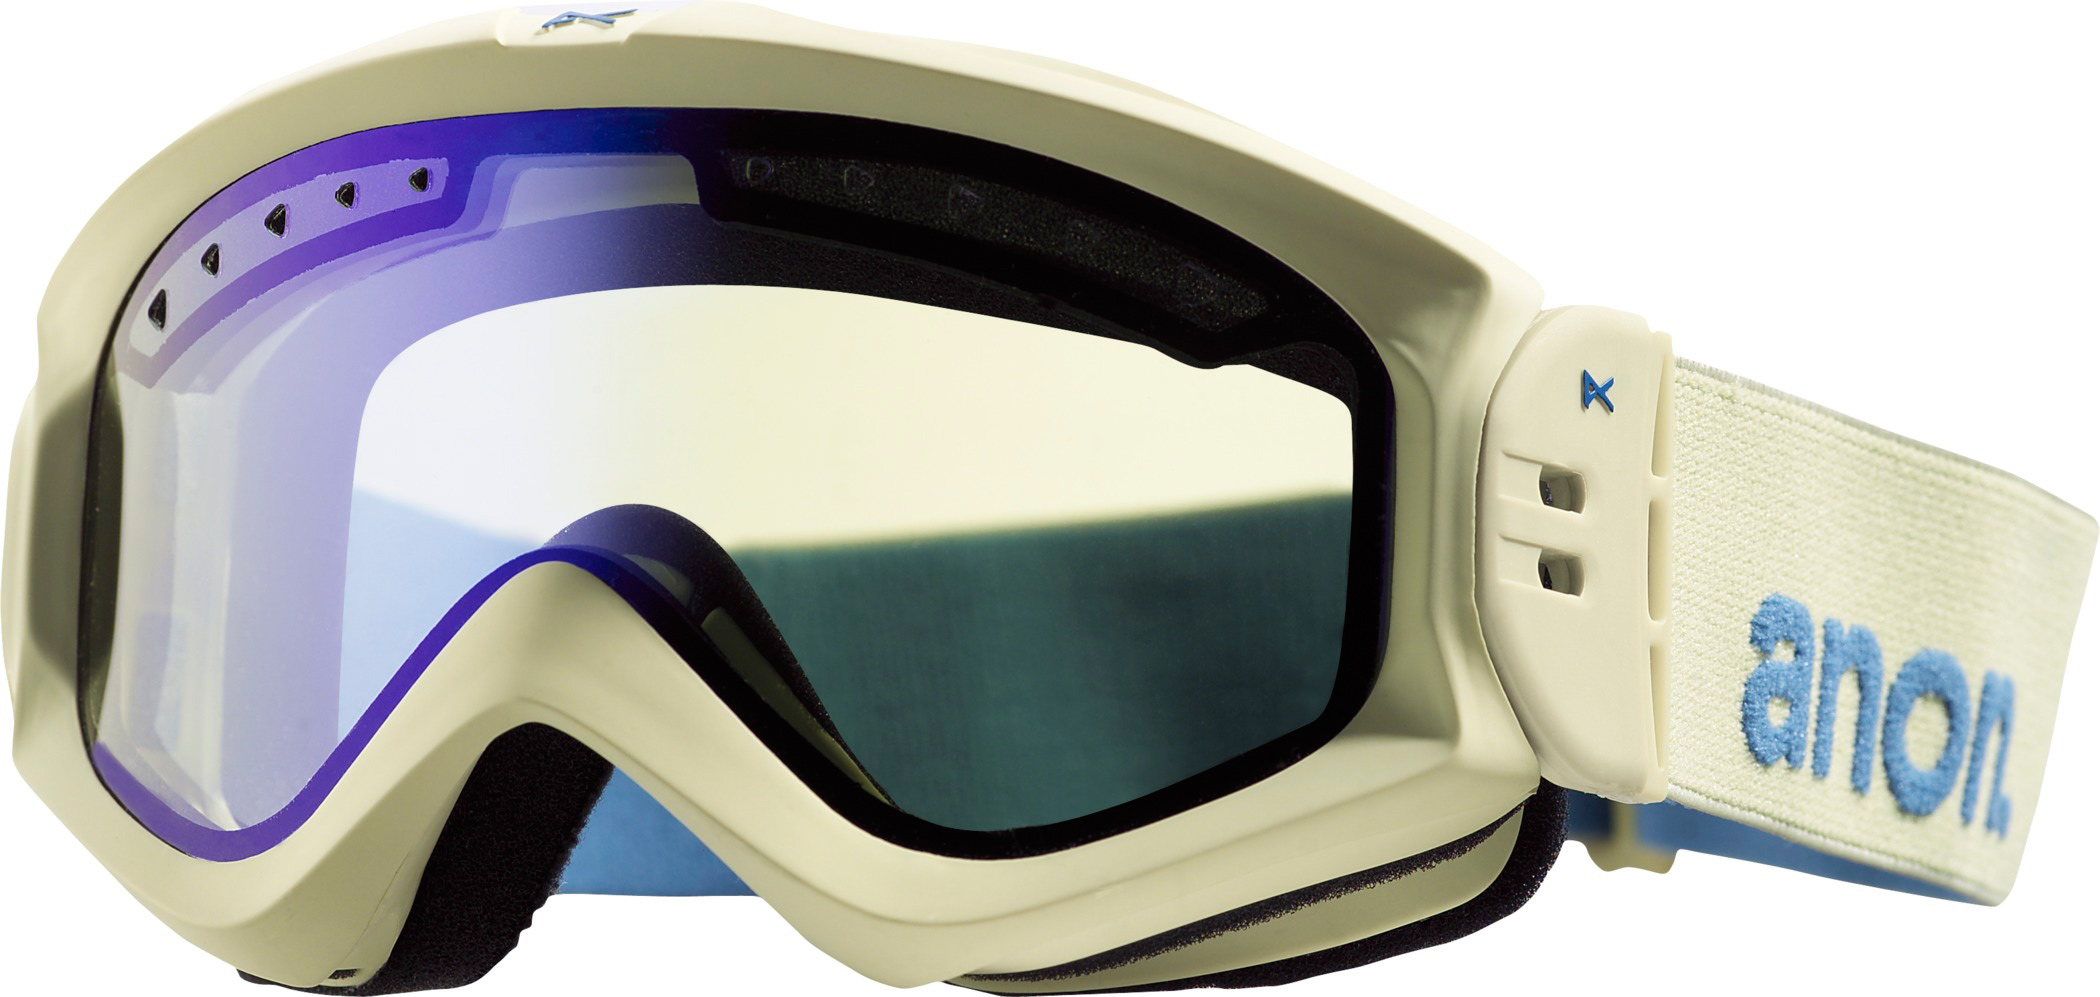 Ski First chair gets a fresh lookKey Features of the Anon Majestic Snowboard Goggles: Auto Adjust Strap Hinge Full Perimeter Channel Venting Dual Layer Face Foam - $41.56